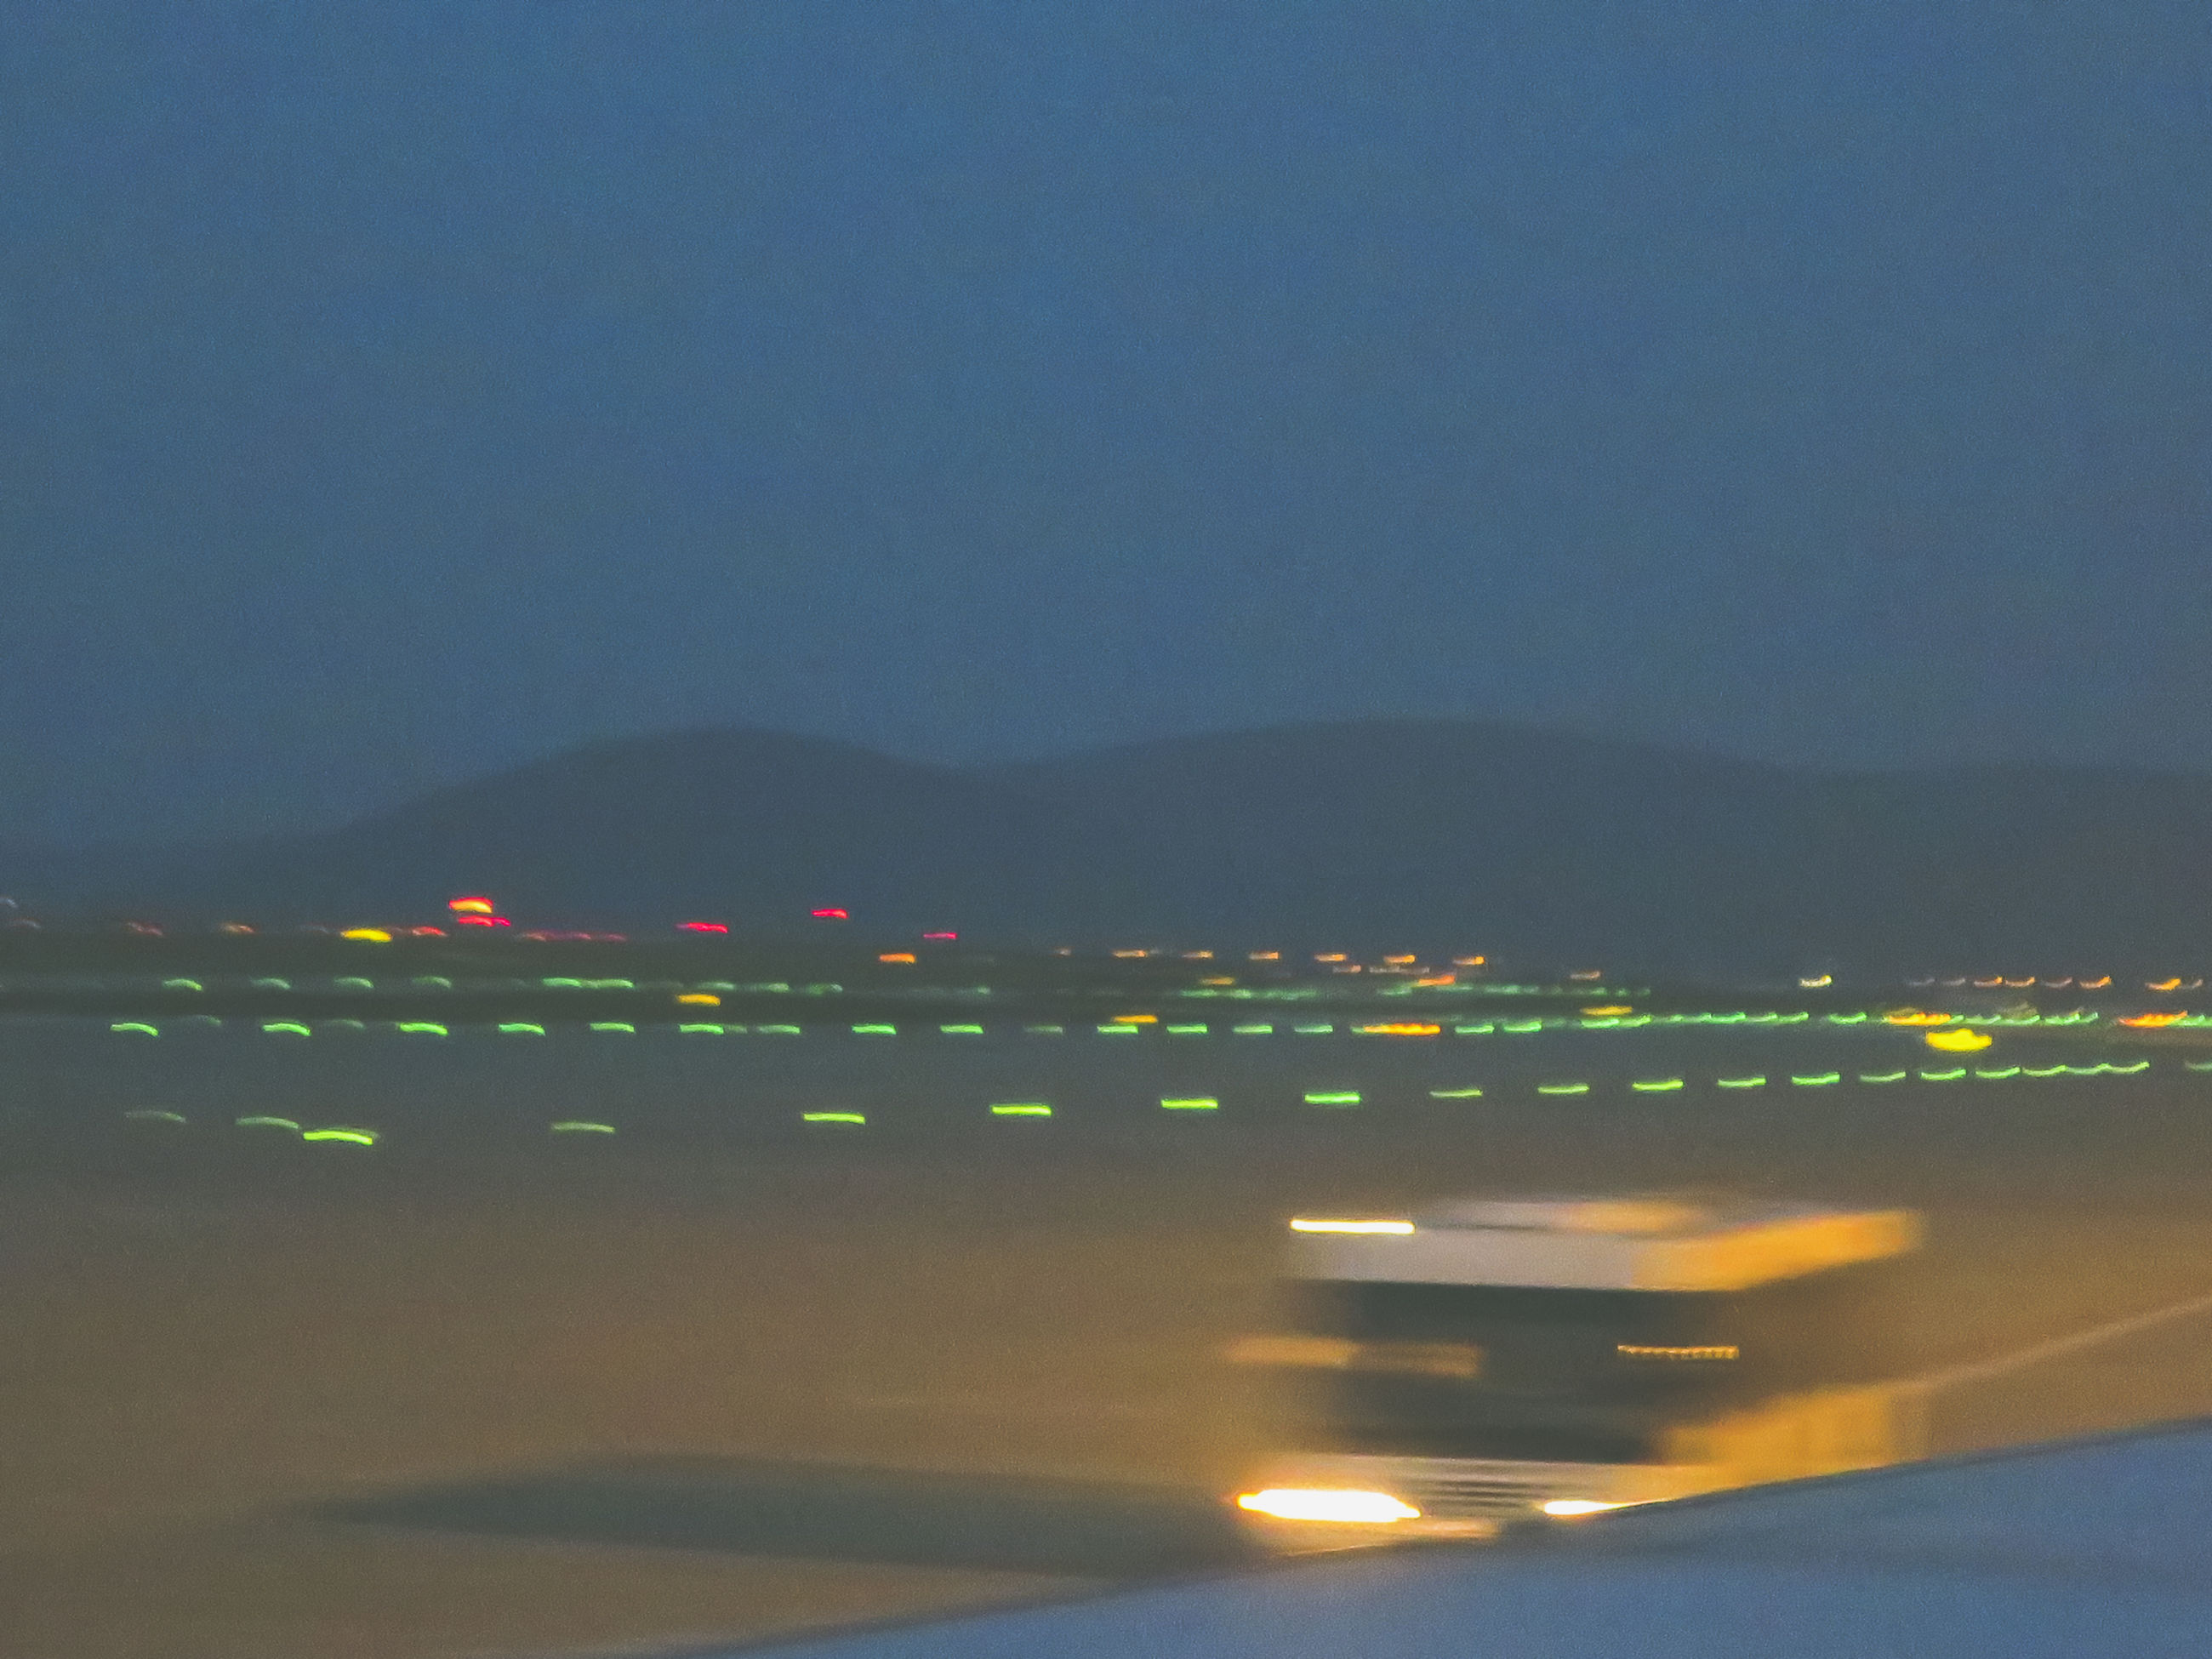 Light trails at airport against clear sky at night